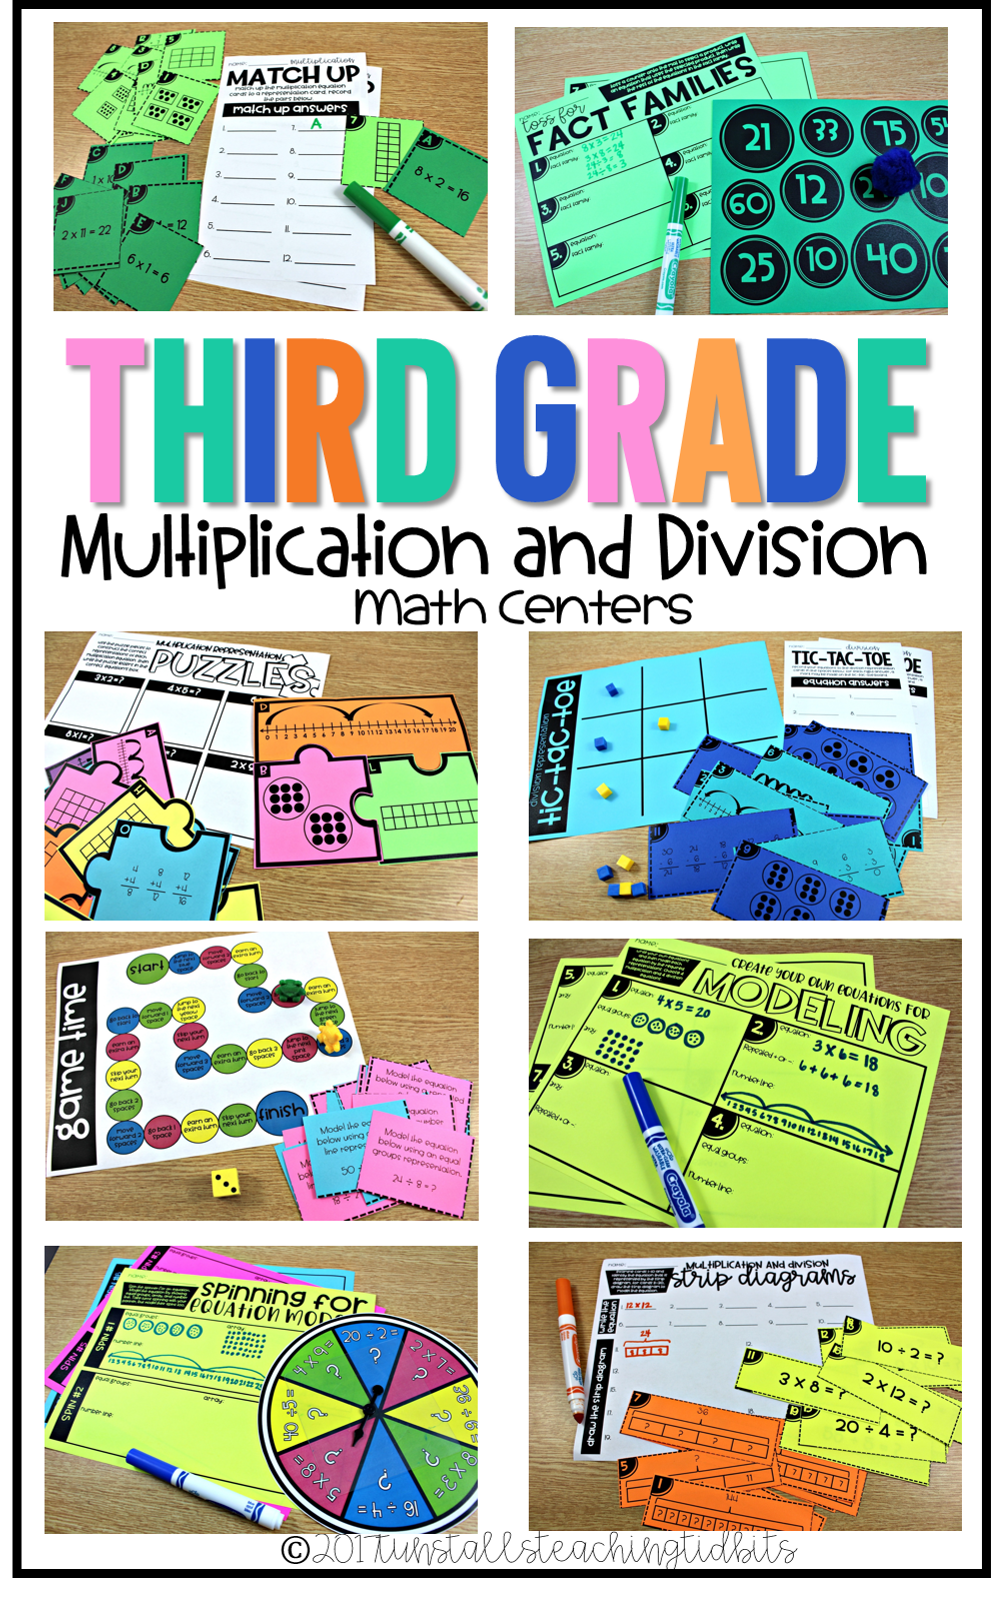 third grade math centers multiplication and division concepts and models all things upper. Black Bedroom Furniture Sets. Home Design Ideas